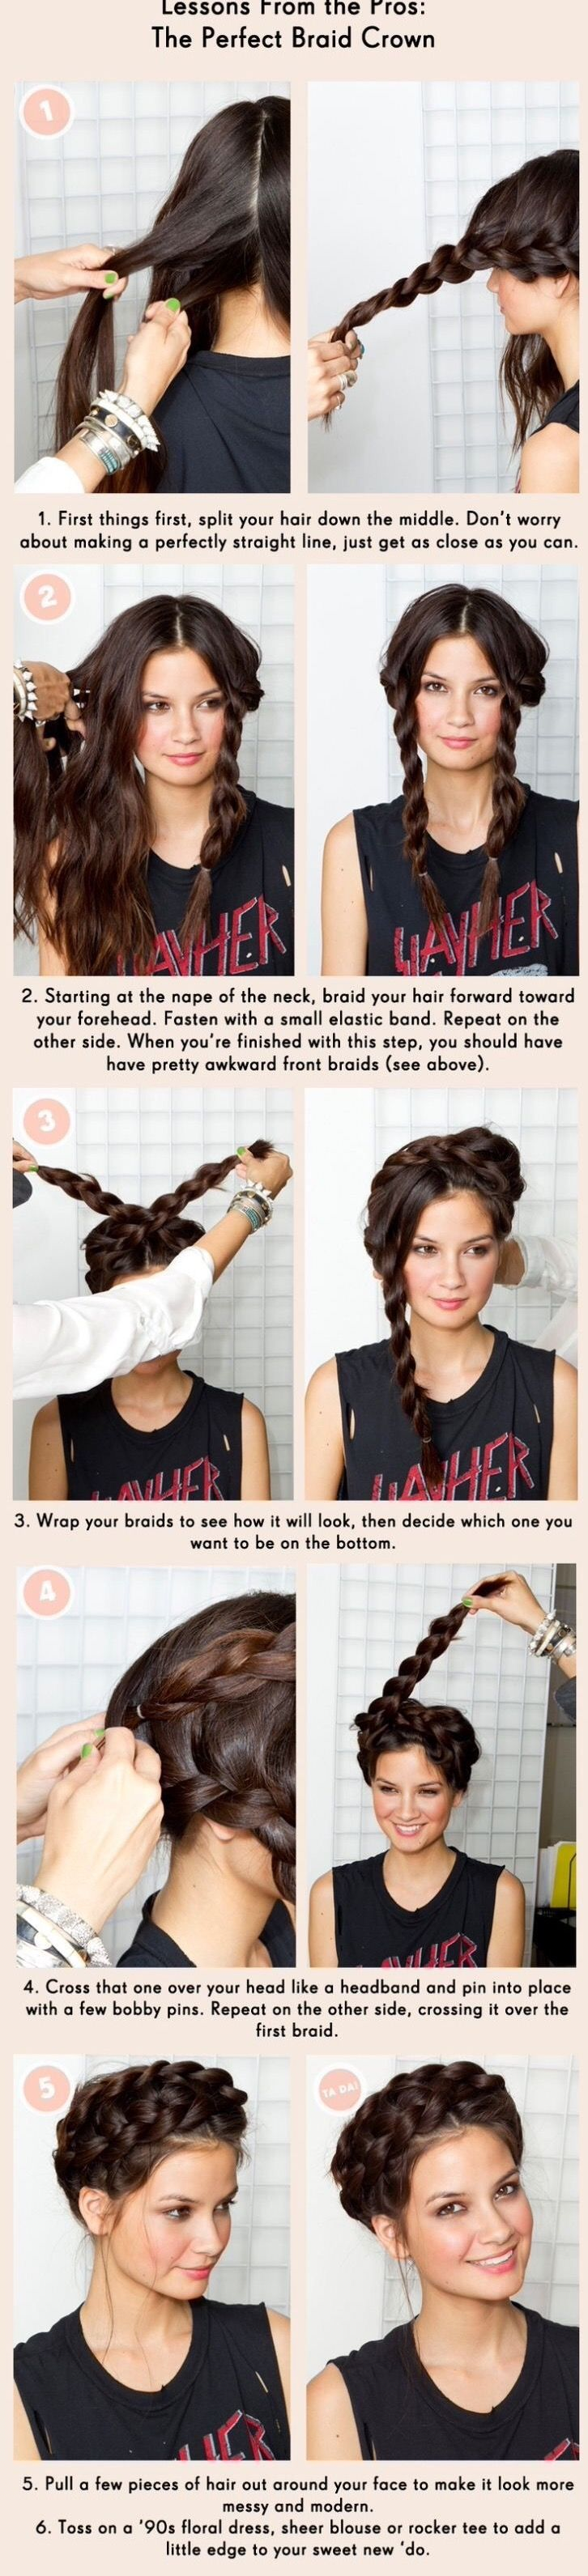 102 best hair styles images on Pinterest